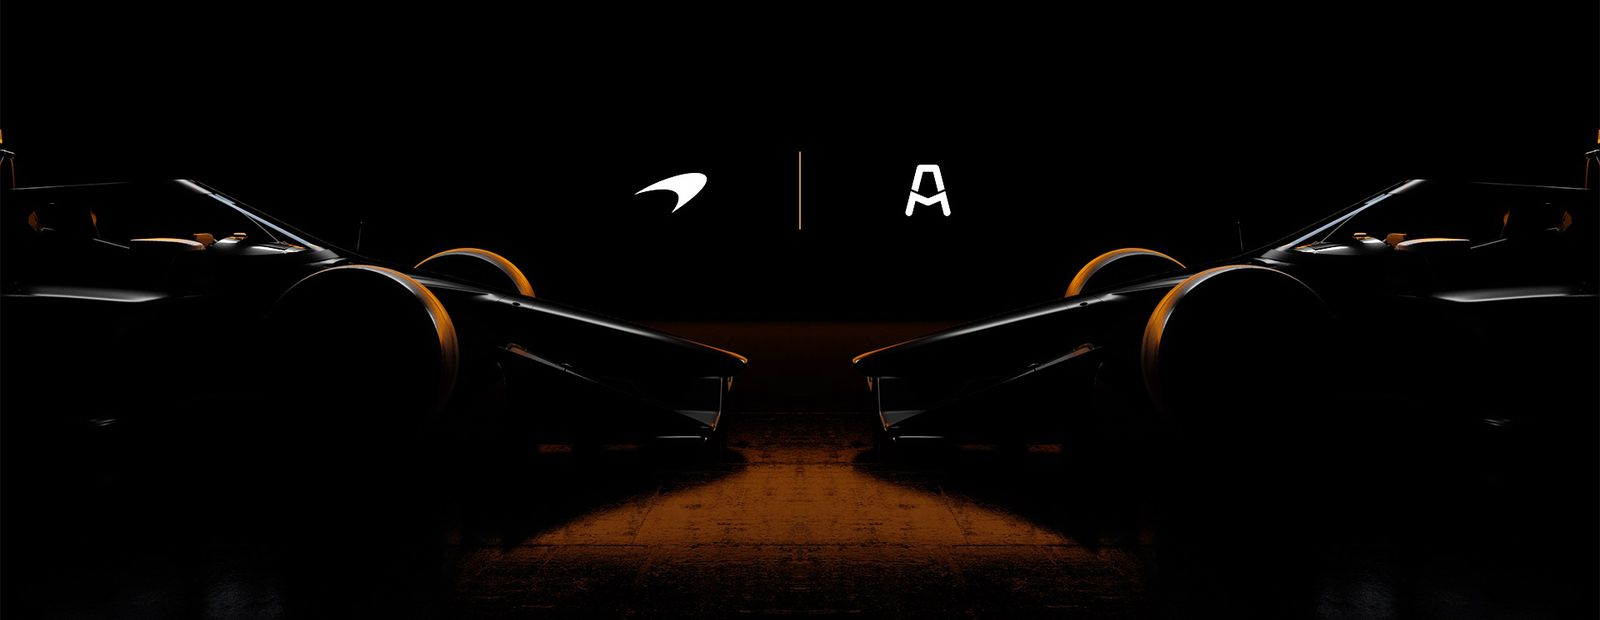 McLaren Racing opens new IndyCar chapter with agreement to acquire majority stake in AMSP